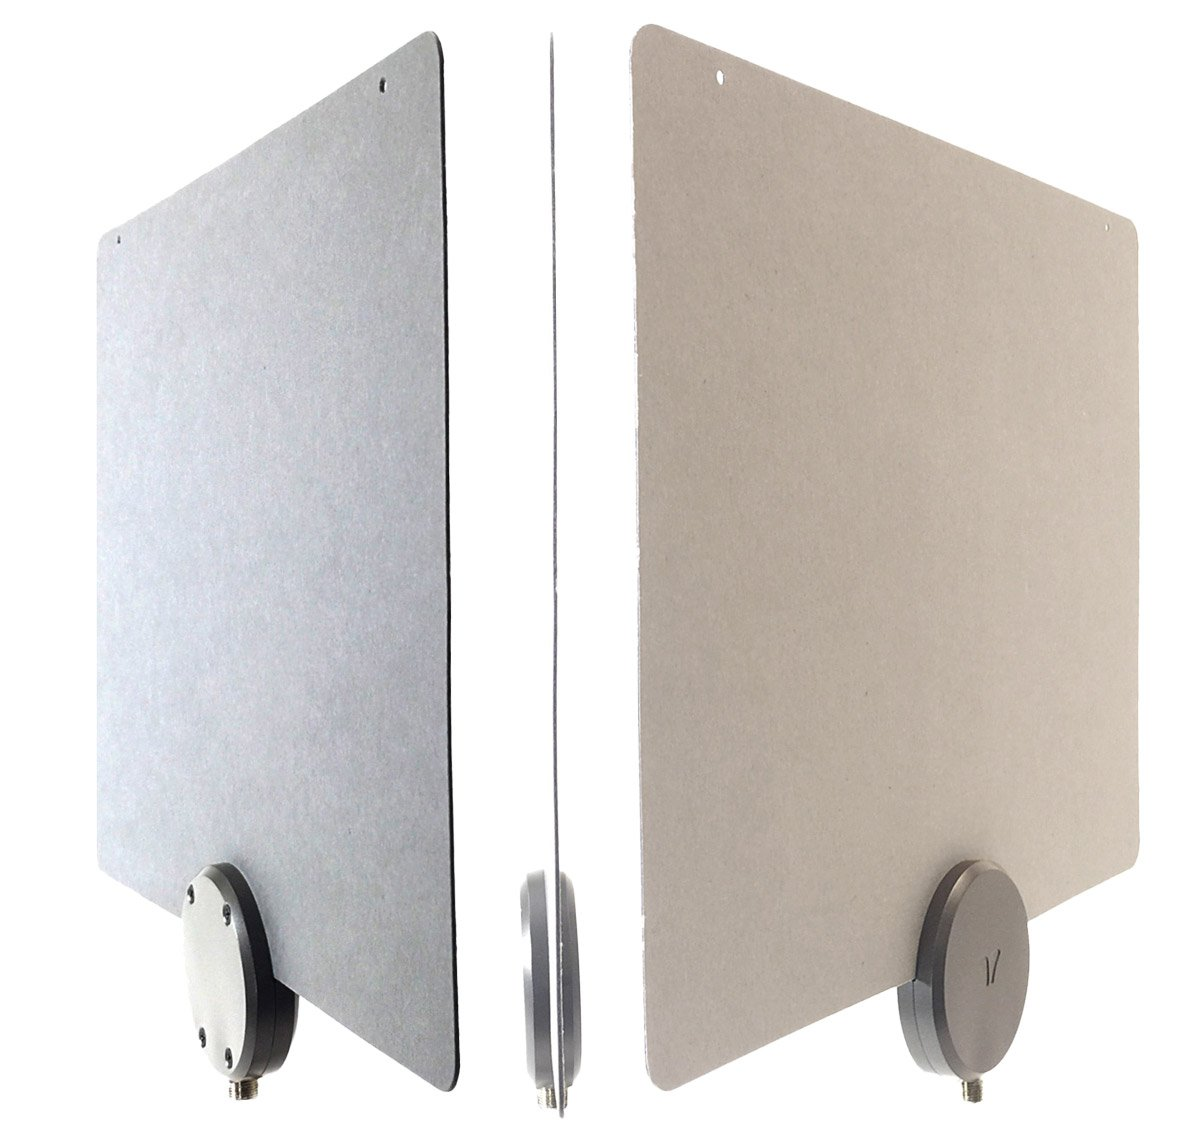 Mohu ReLeaf Indoor TV Antenna Made with Recycled Materials 4KReady HDTV 30 Mile Range